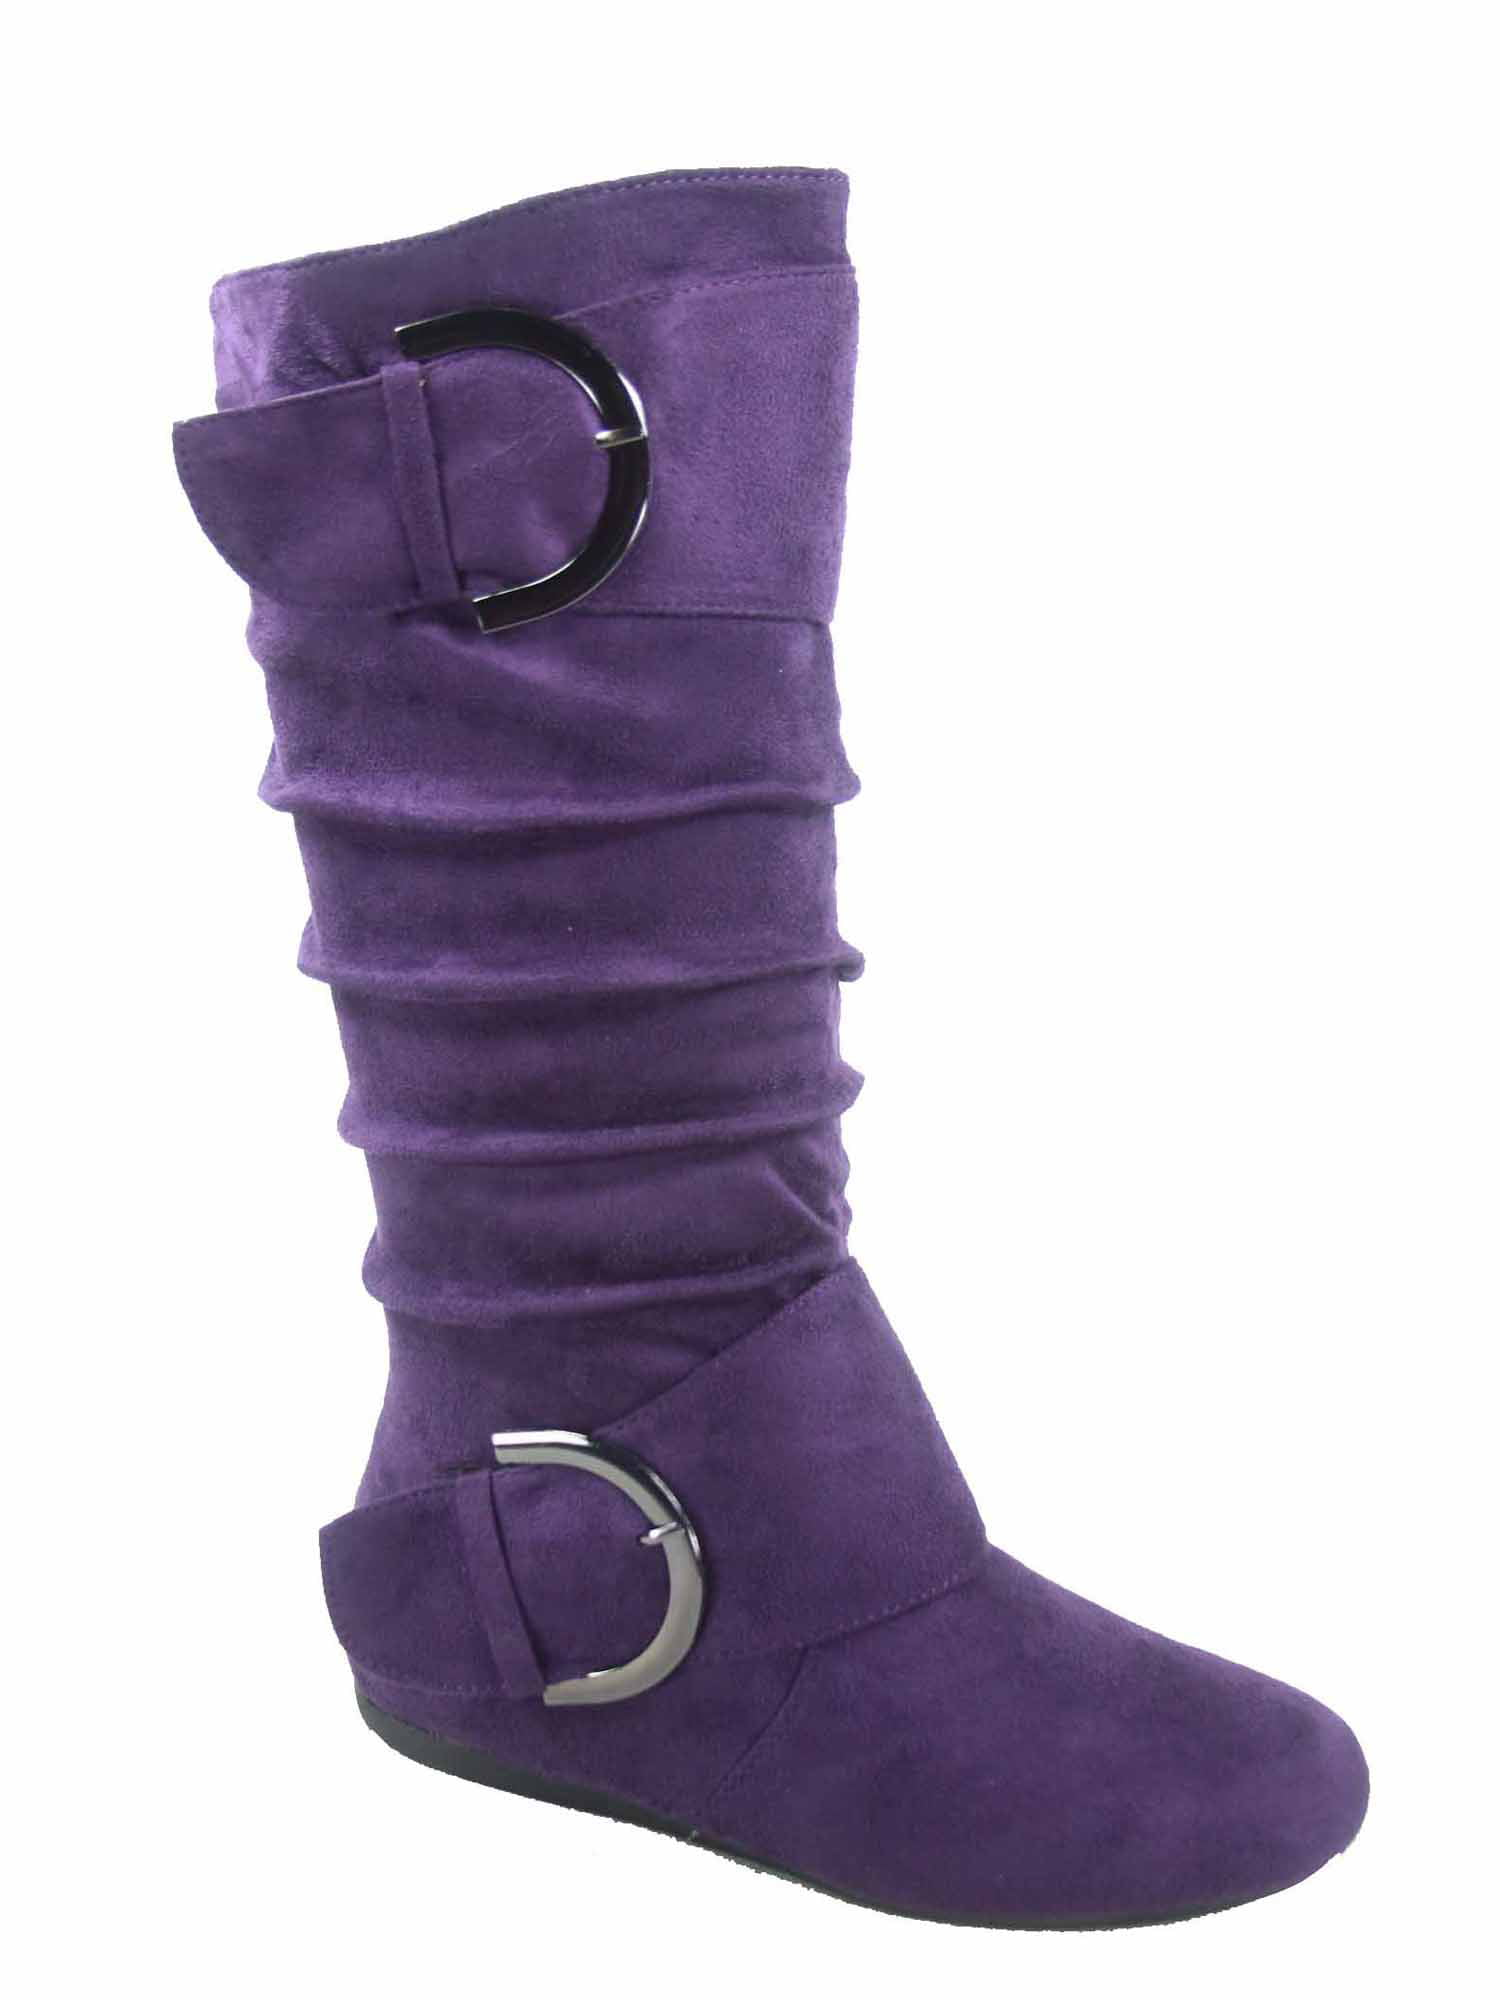 Women/'s Fashion Causal Zipper Round Toe Slouchy Flat Mid-Calf Boot Shoes NEW